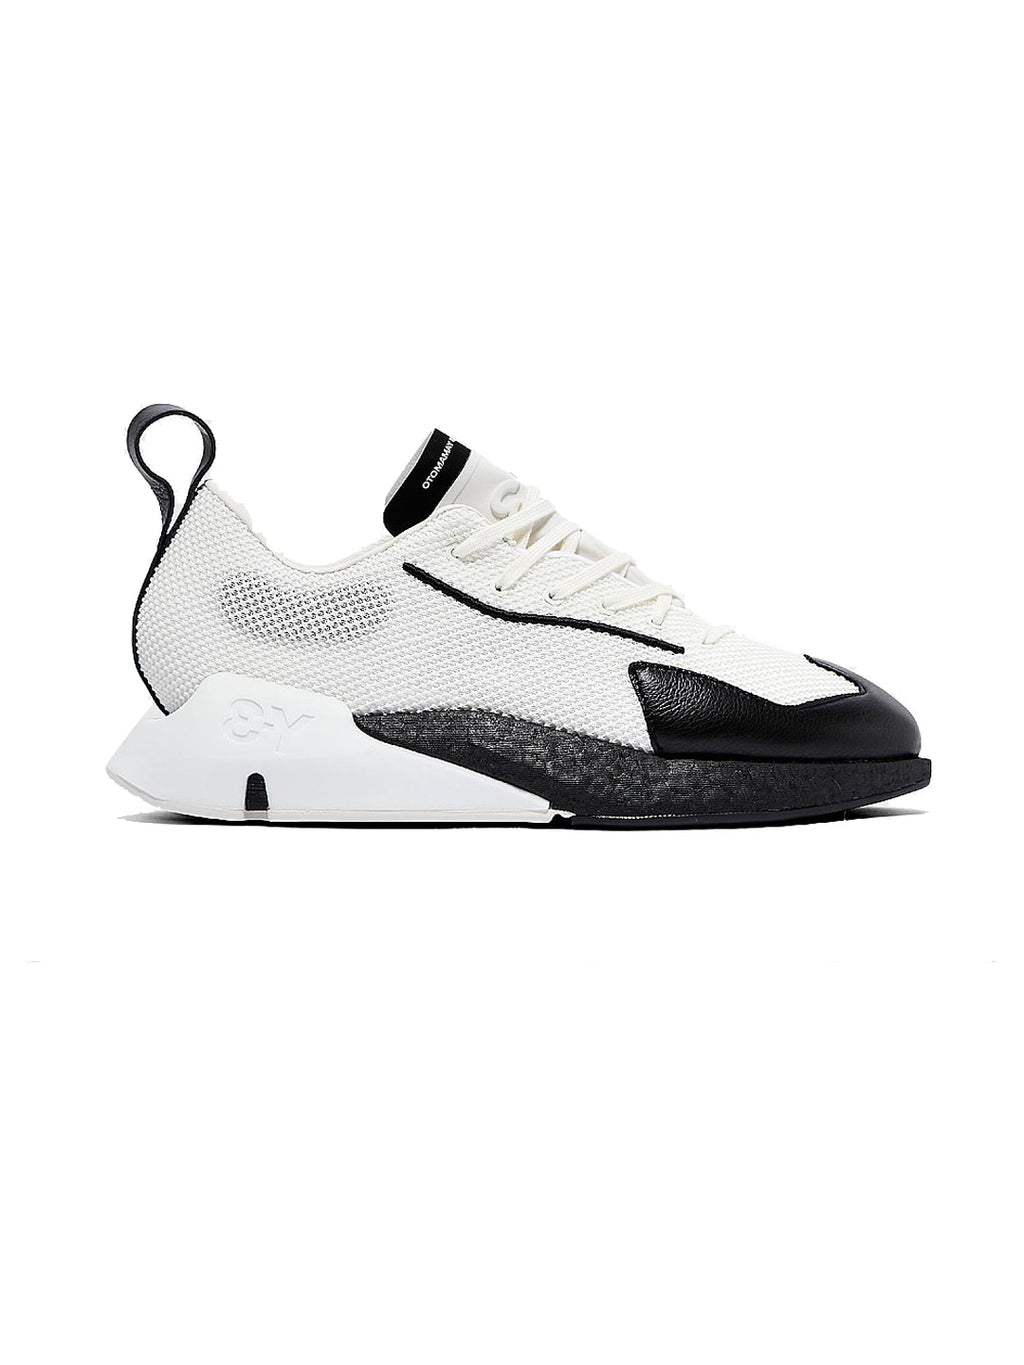 White & Black Y-3 Orisan Sneakers